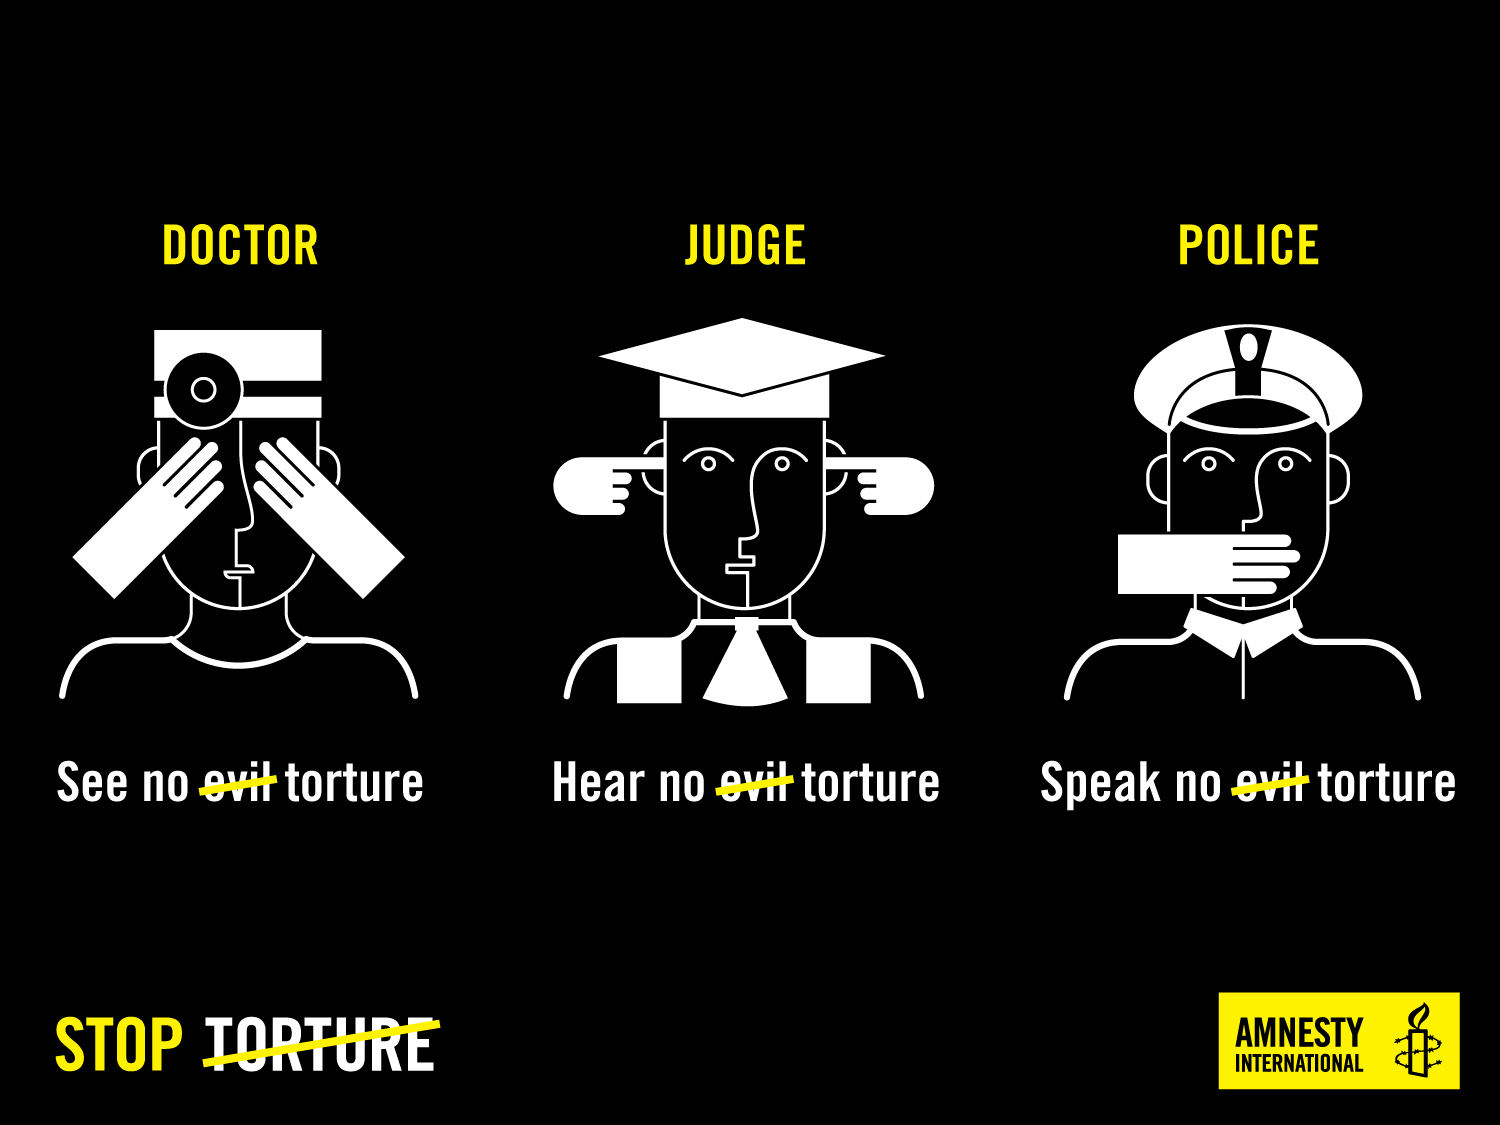 """the use of torture The cia has six interrogation techniques they are authorized to use, and one of them is basically torture the cold cell is an """"enhanced interrogation technique"""" where the prisoner is placed in front of an air conditioner unit for hours, days, and even years at a time."""